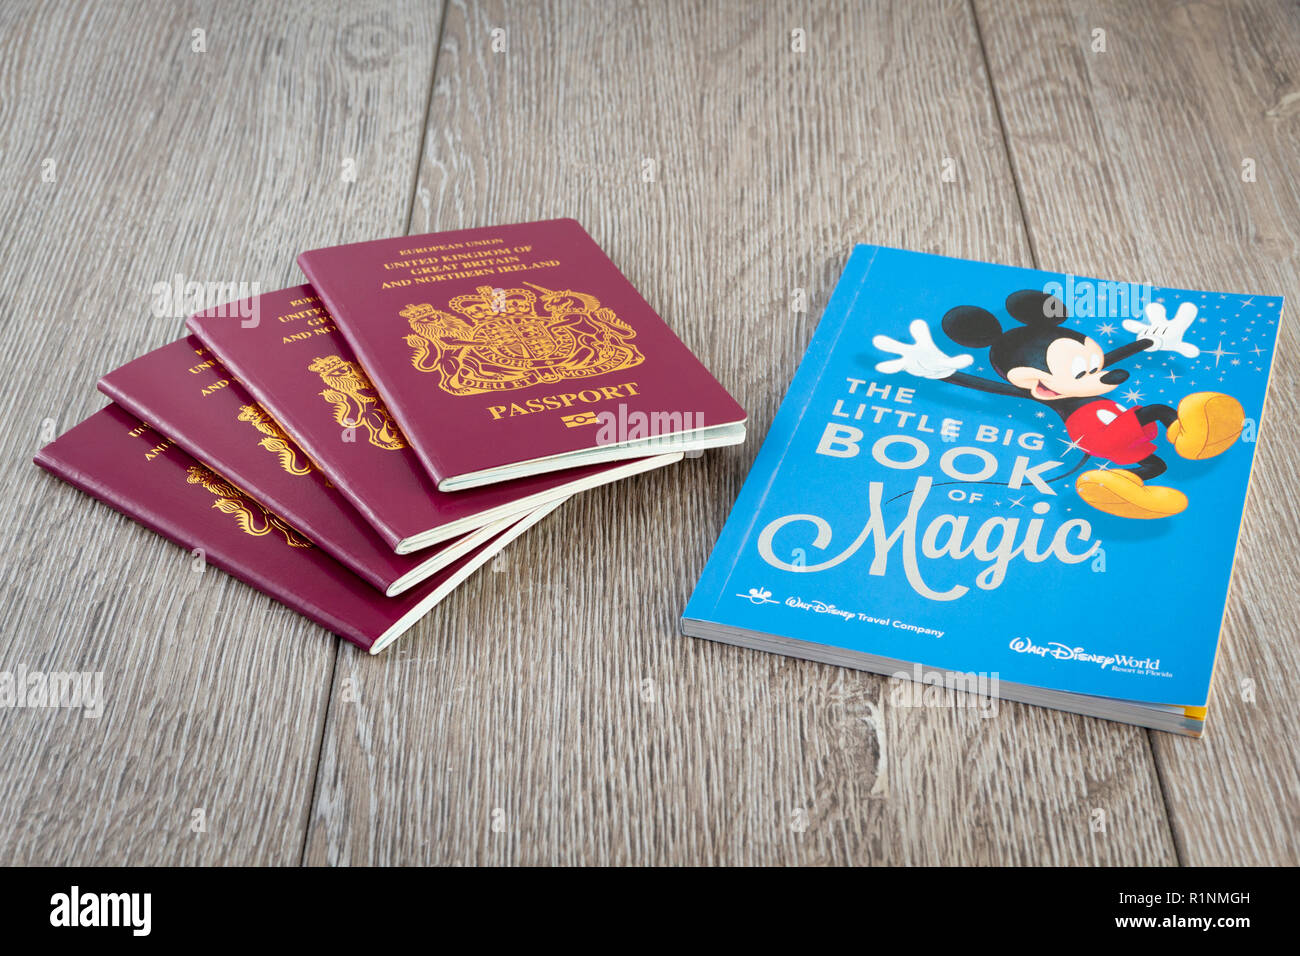 British Passports with a Disney Little Book of Magic - Stock Image